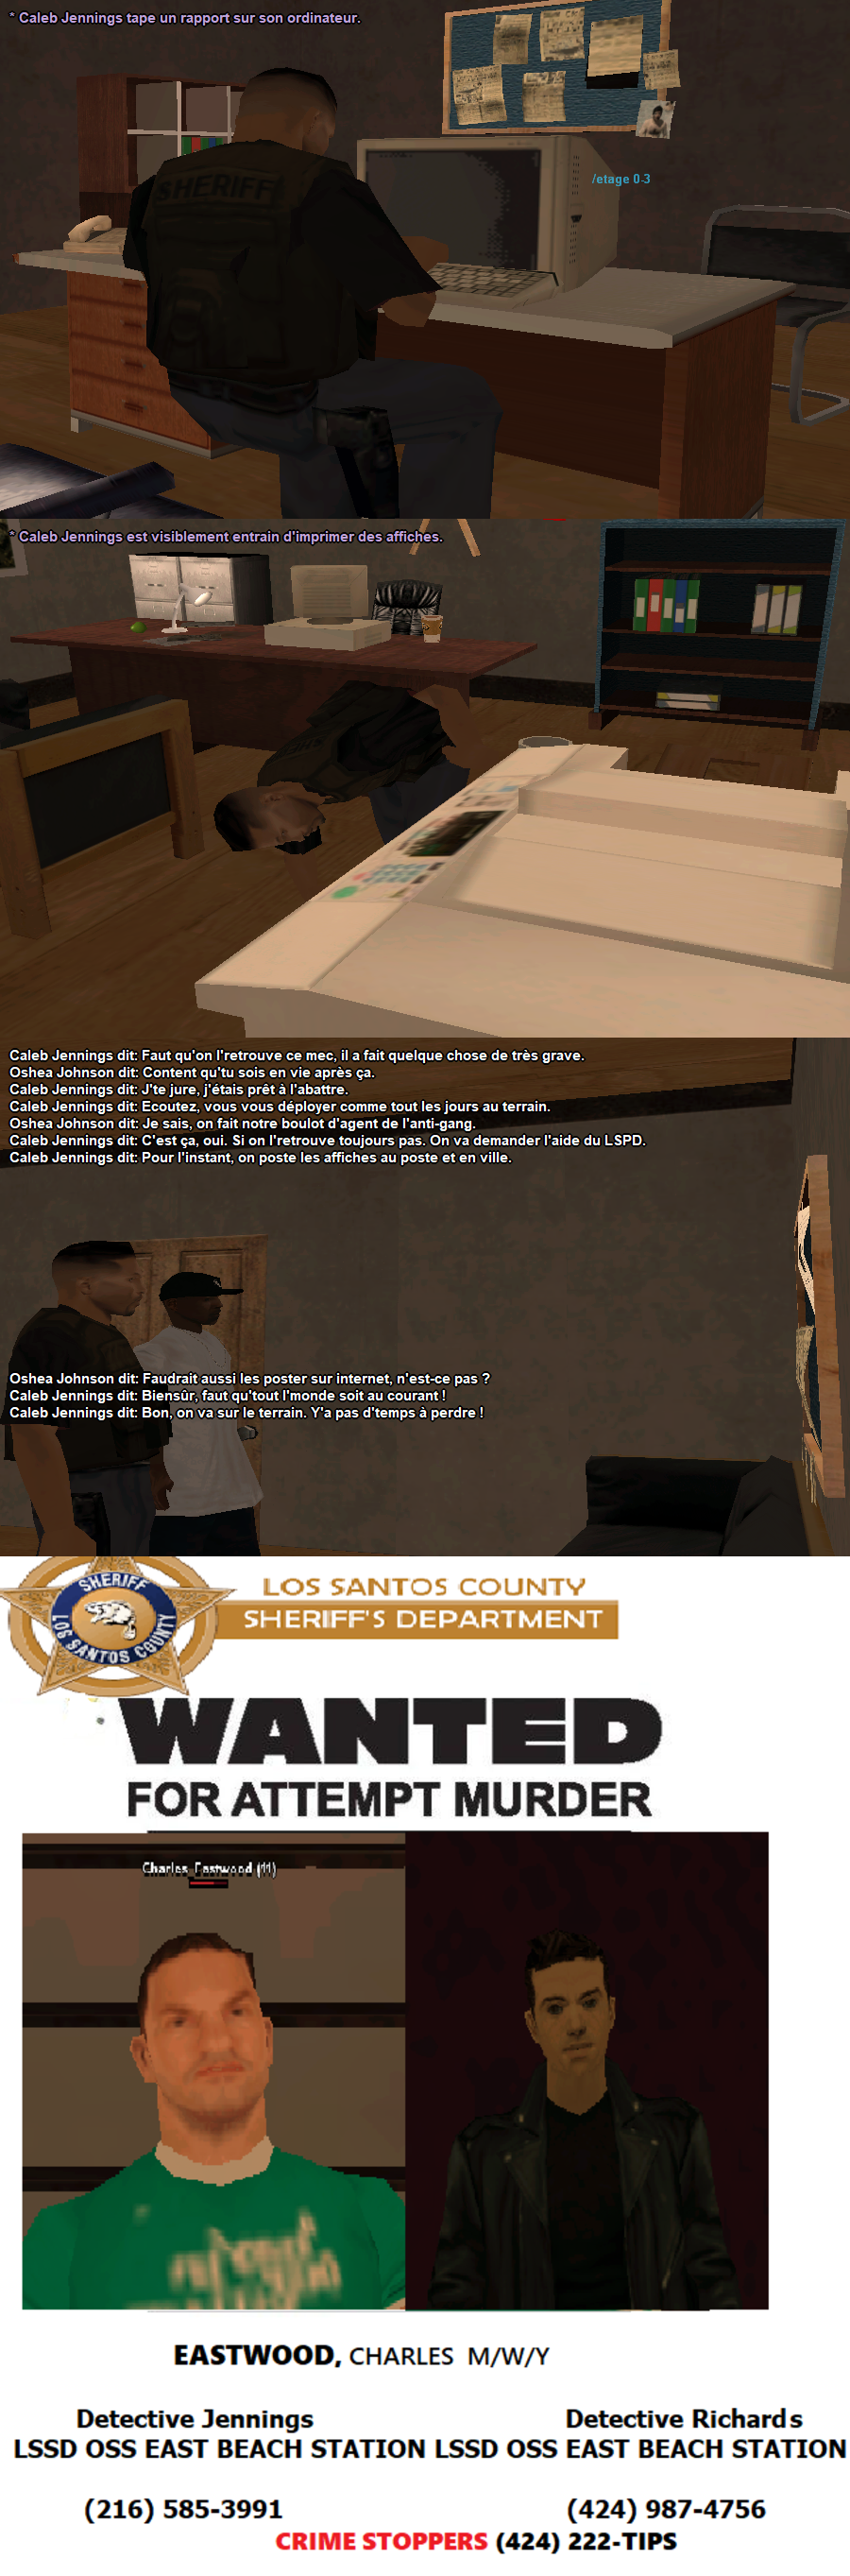 Los Santos Sheriff's Department - A tradition of service (8) - Page 16 1535982992-a